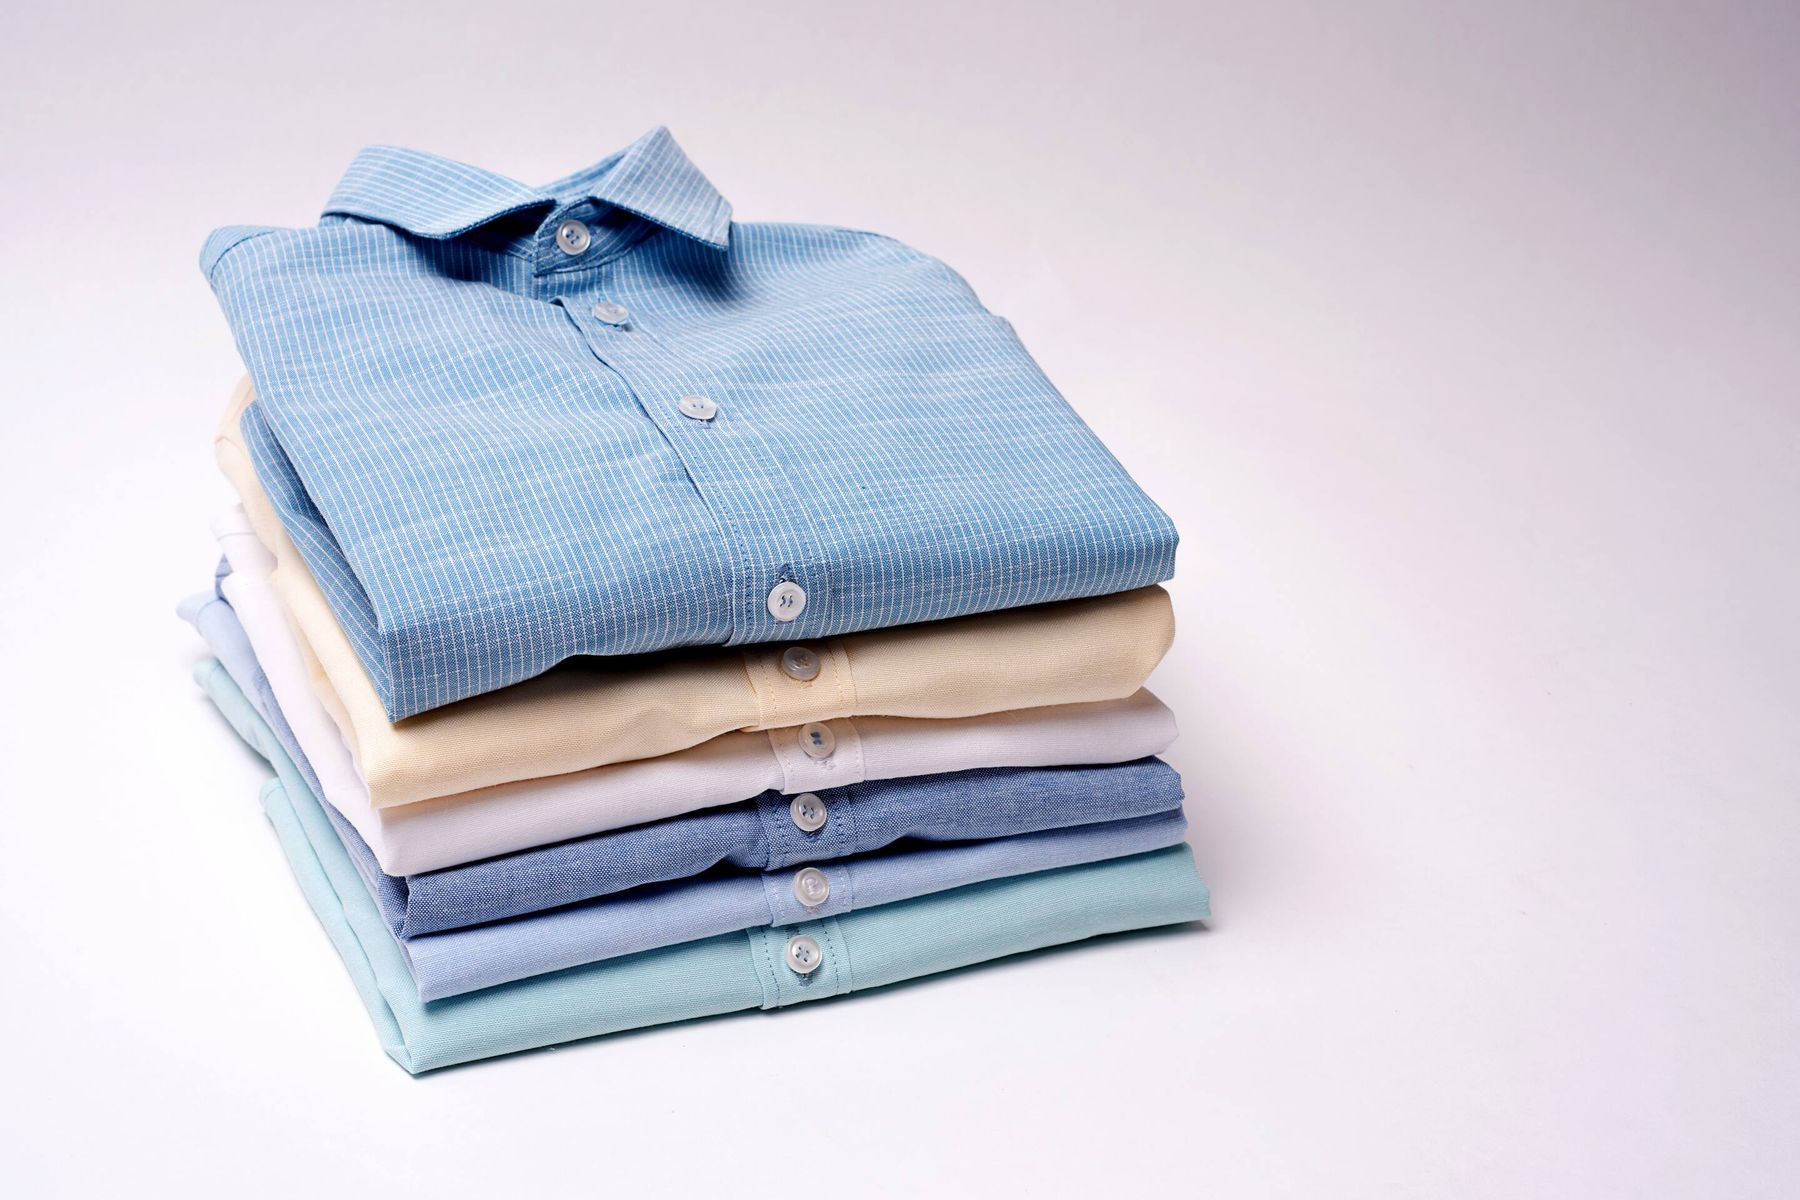 How to starch your cotton shirts to make them crisp